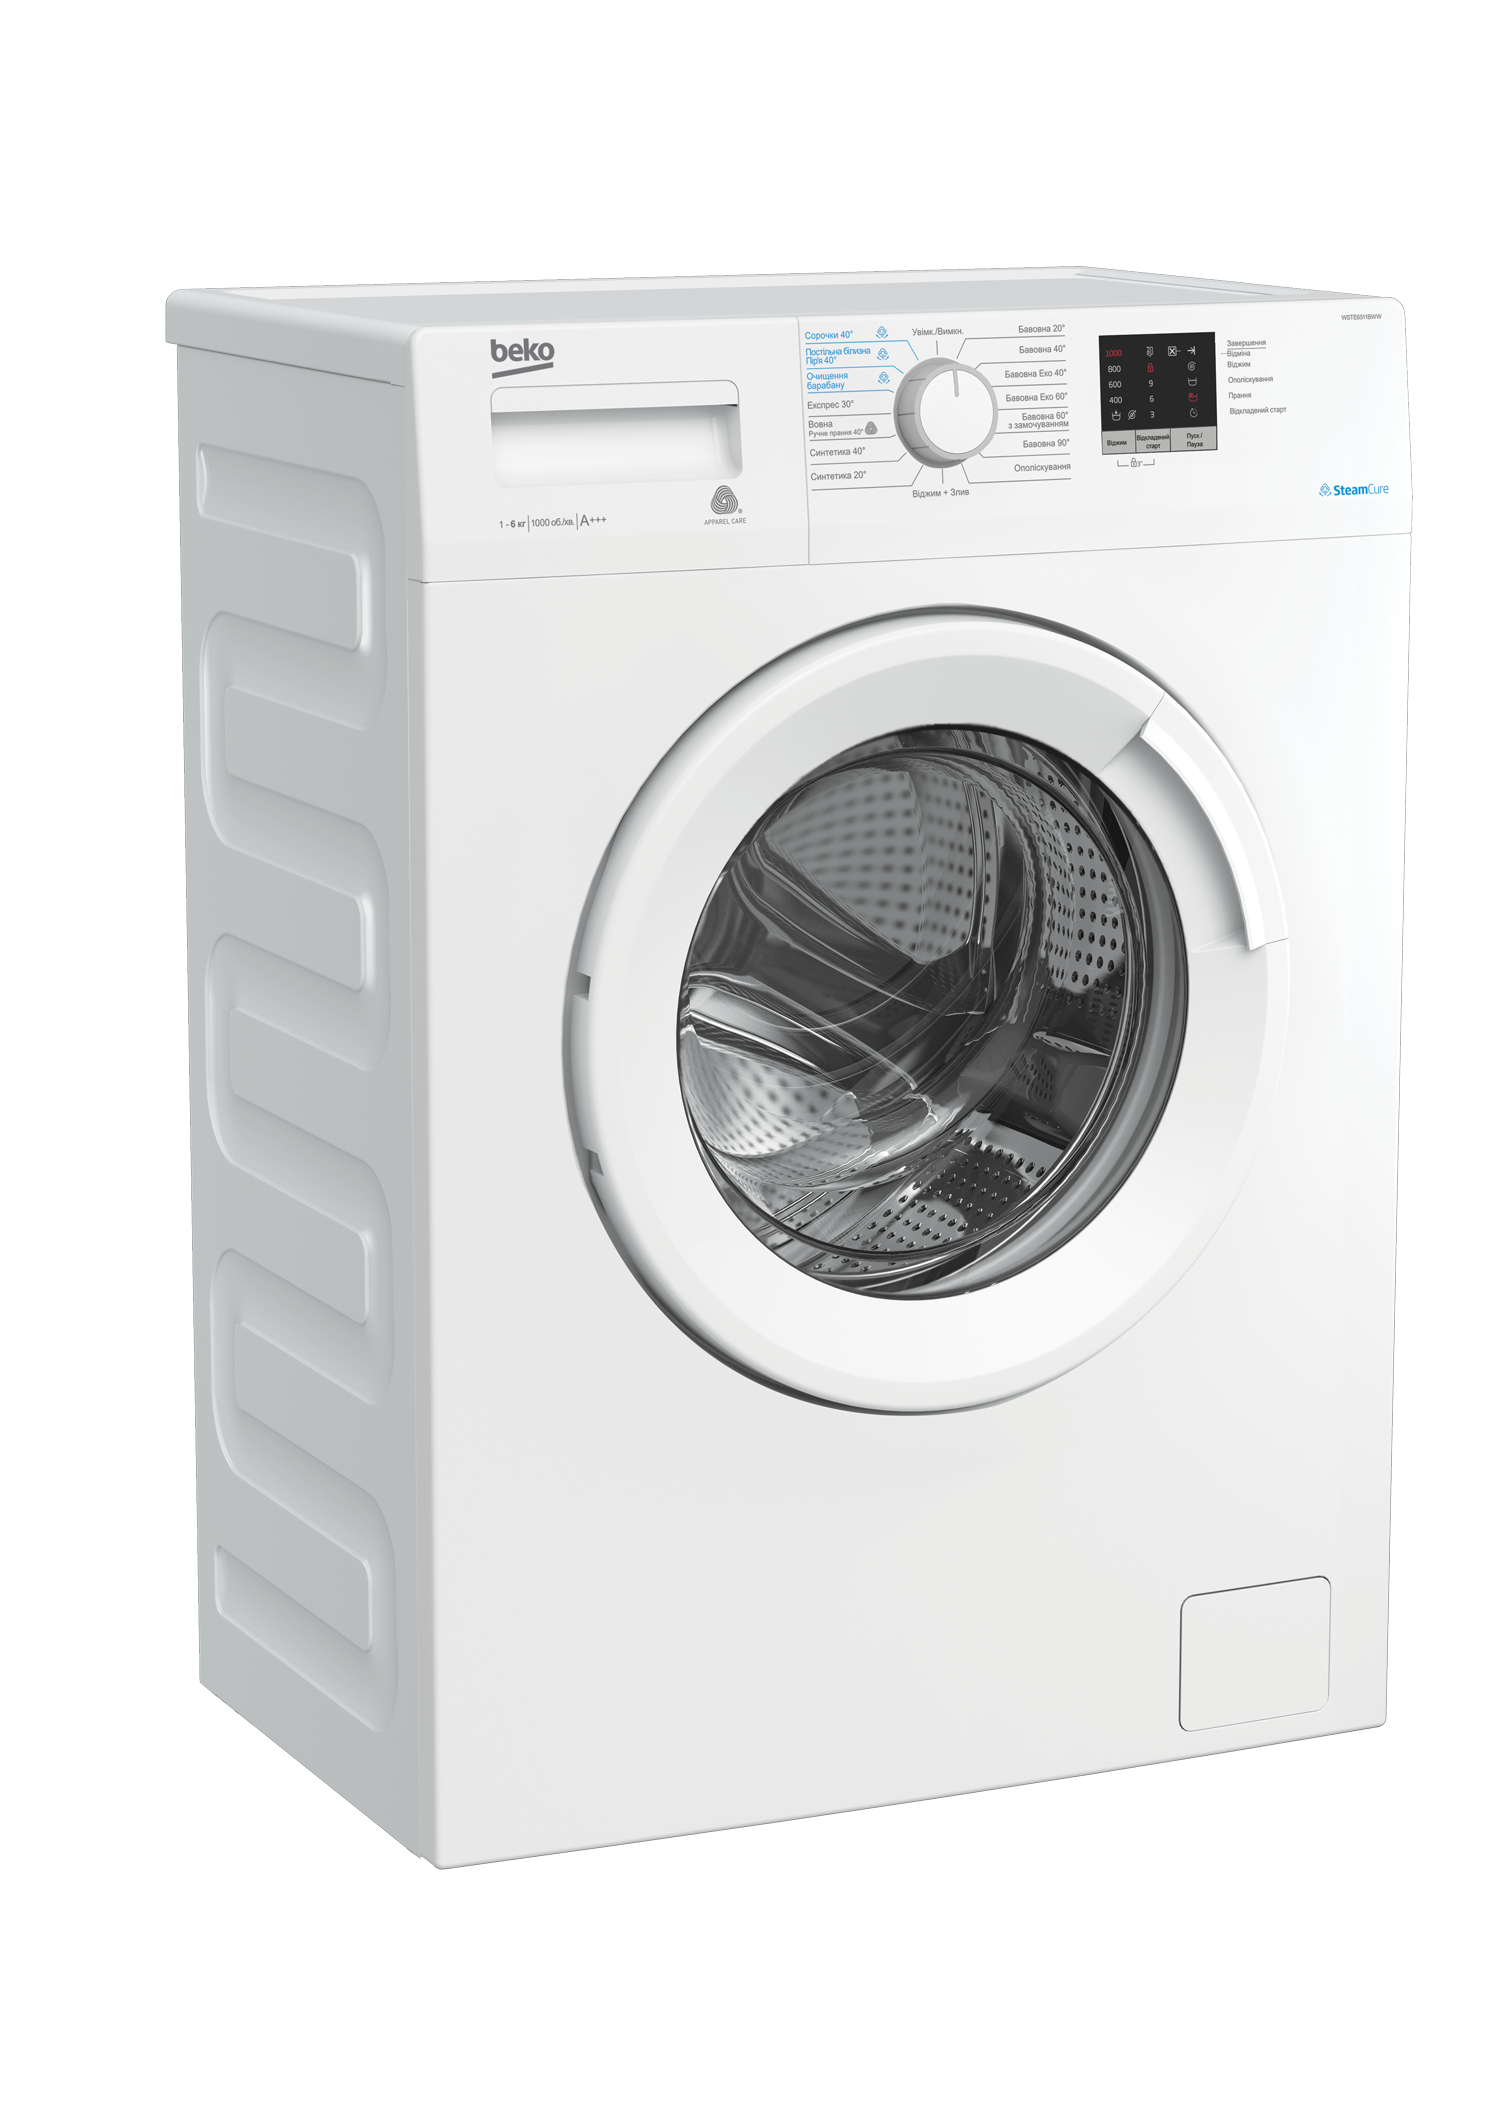 Freestanding Washing Machine (6 kg, 1000 rpm) WSTE6511BWW